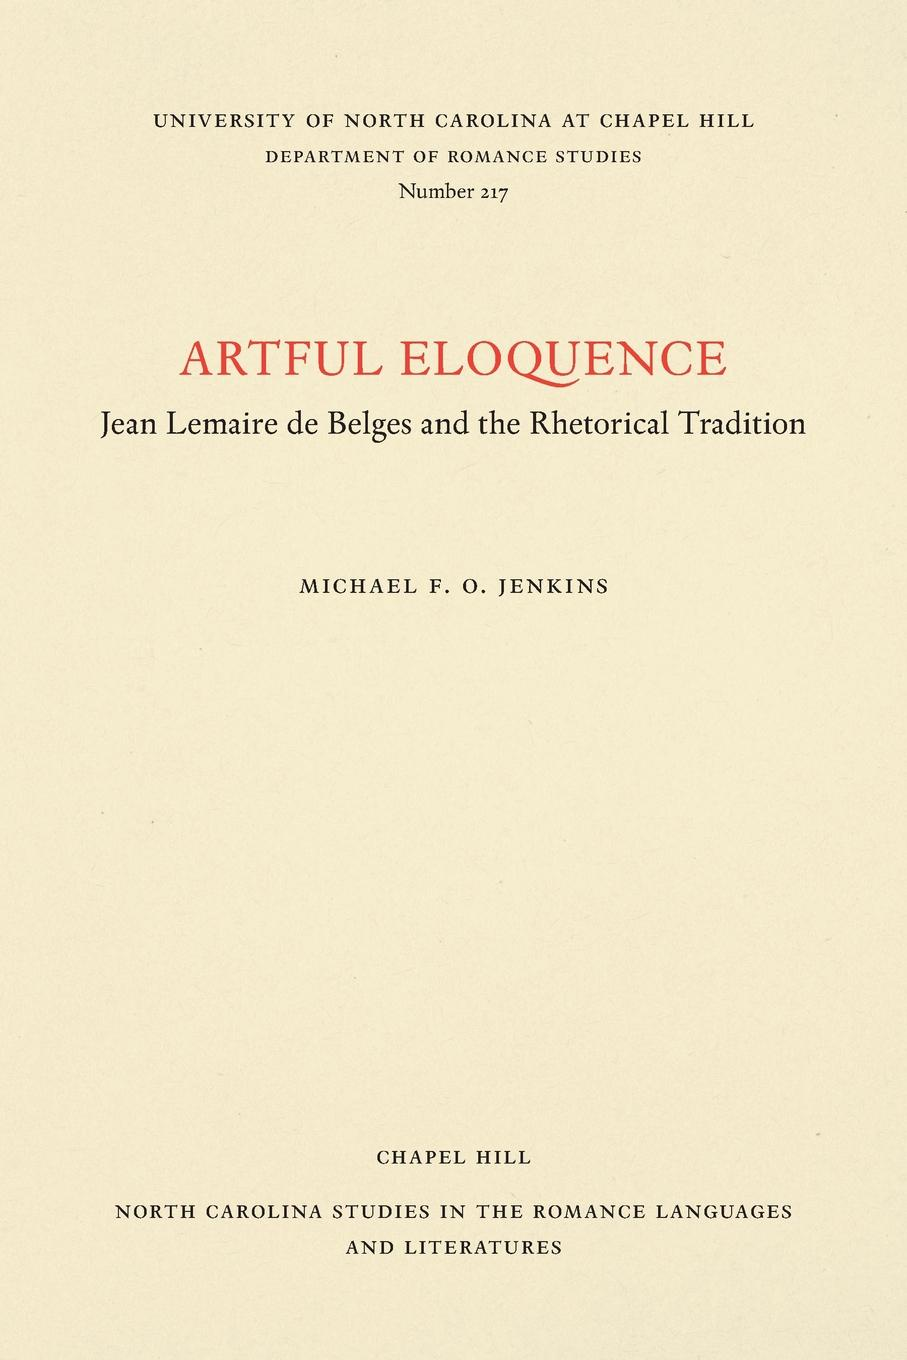 Michael F. O. Jenkins Artful Eloquence. Jean Lemaire de Belges and the Rhetorical Tradition louis cauchois lemaire opuscules